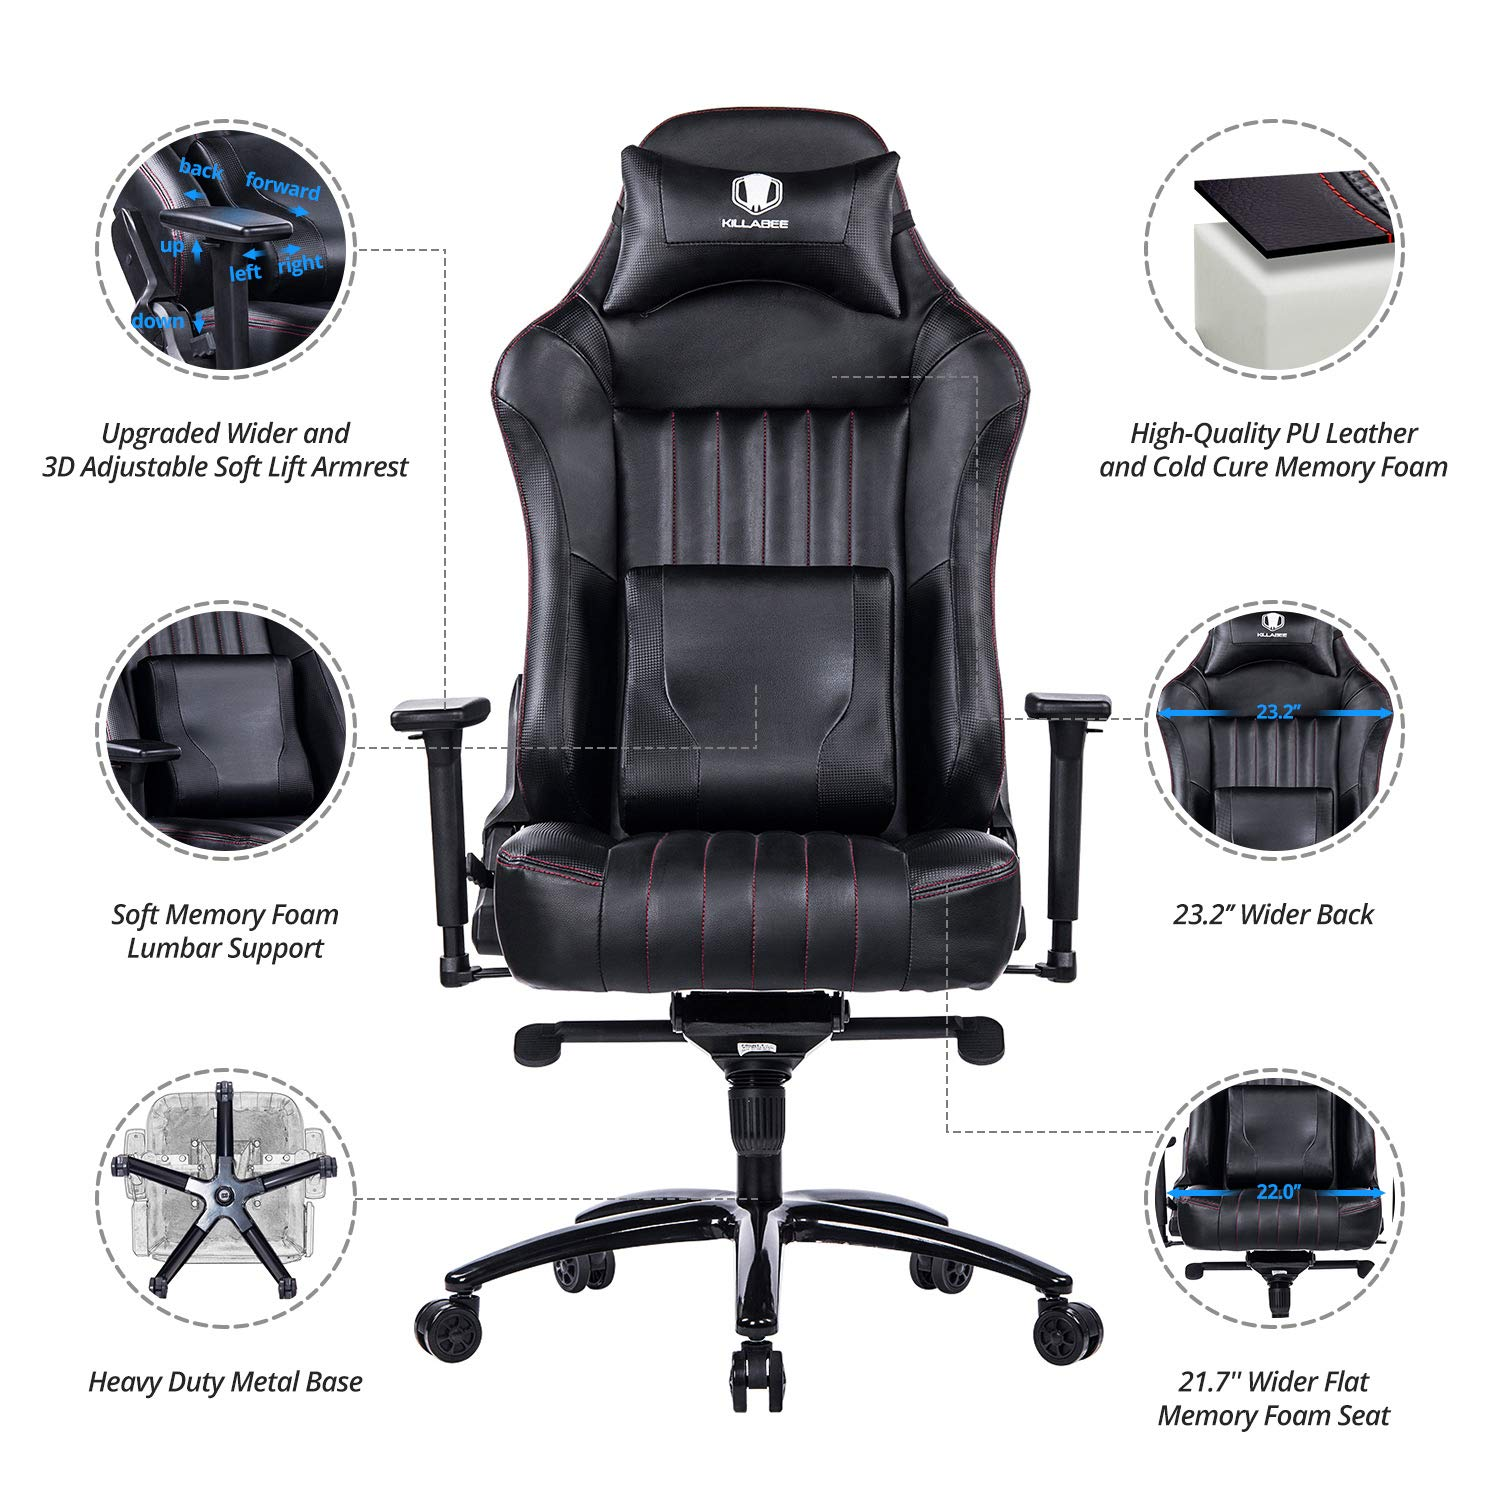 KILLABEE Big and Tall 400lb Memory Foam Gaming Chair - Adjustable Tilt, Back Angle and 3D Arms Ergonomic High-Back Leather Racing Executive Computer Desk Office Chair Metal Base, Black by KILLABEE (Image #4)